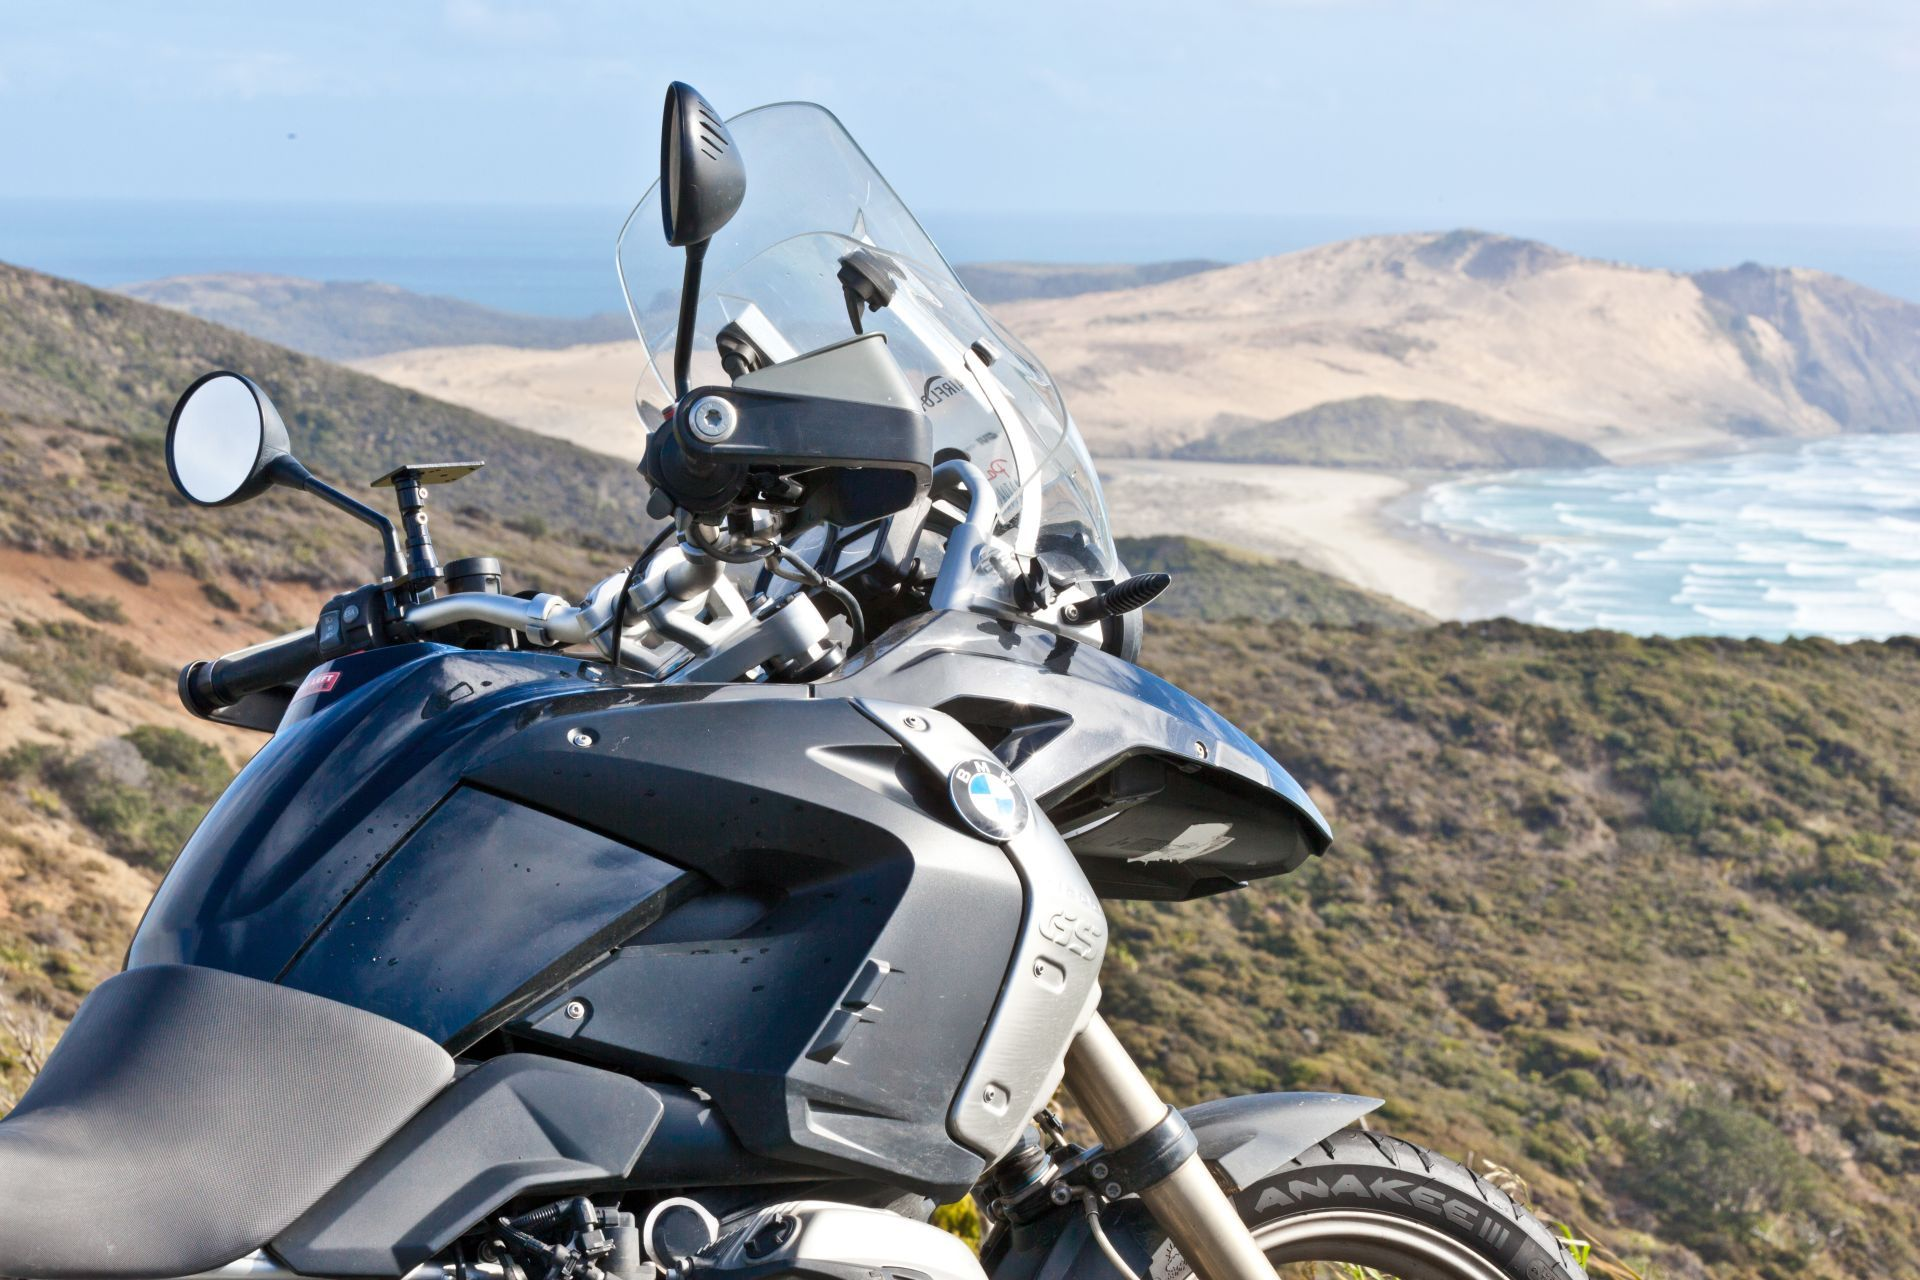 Motorcycle Hire New Zealand